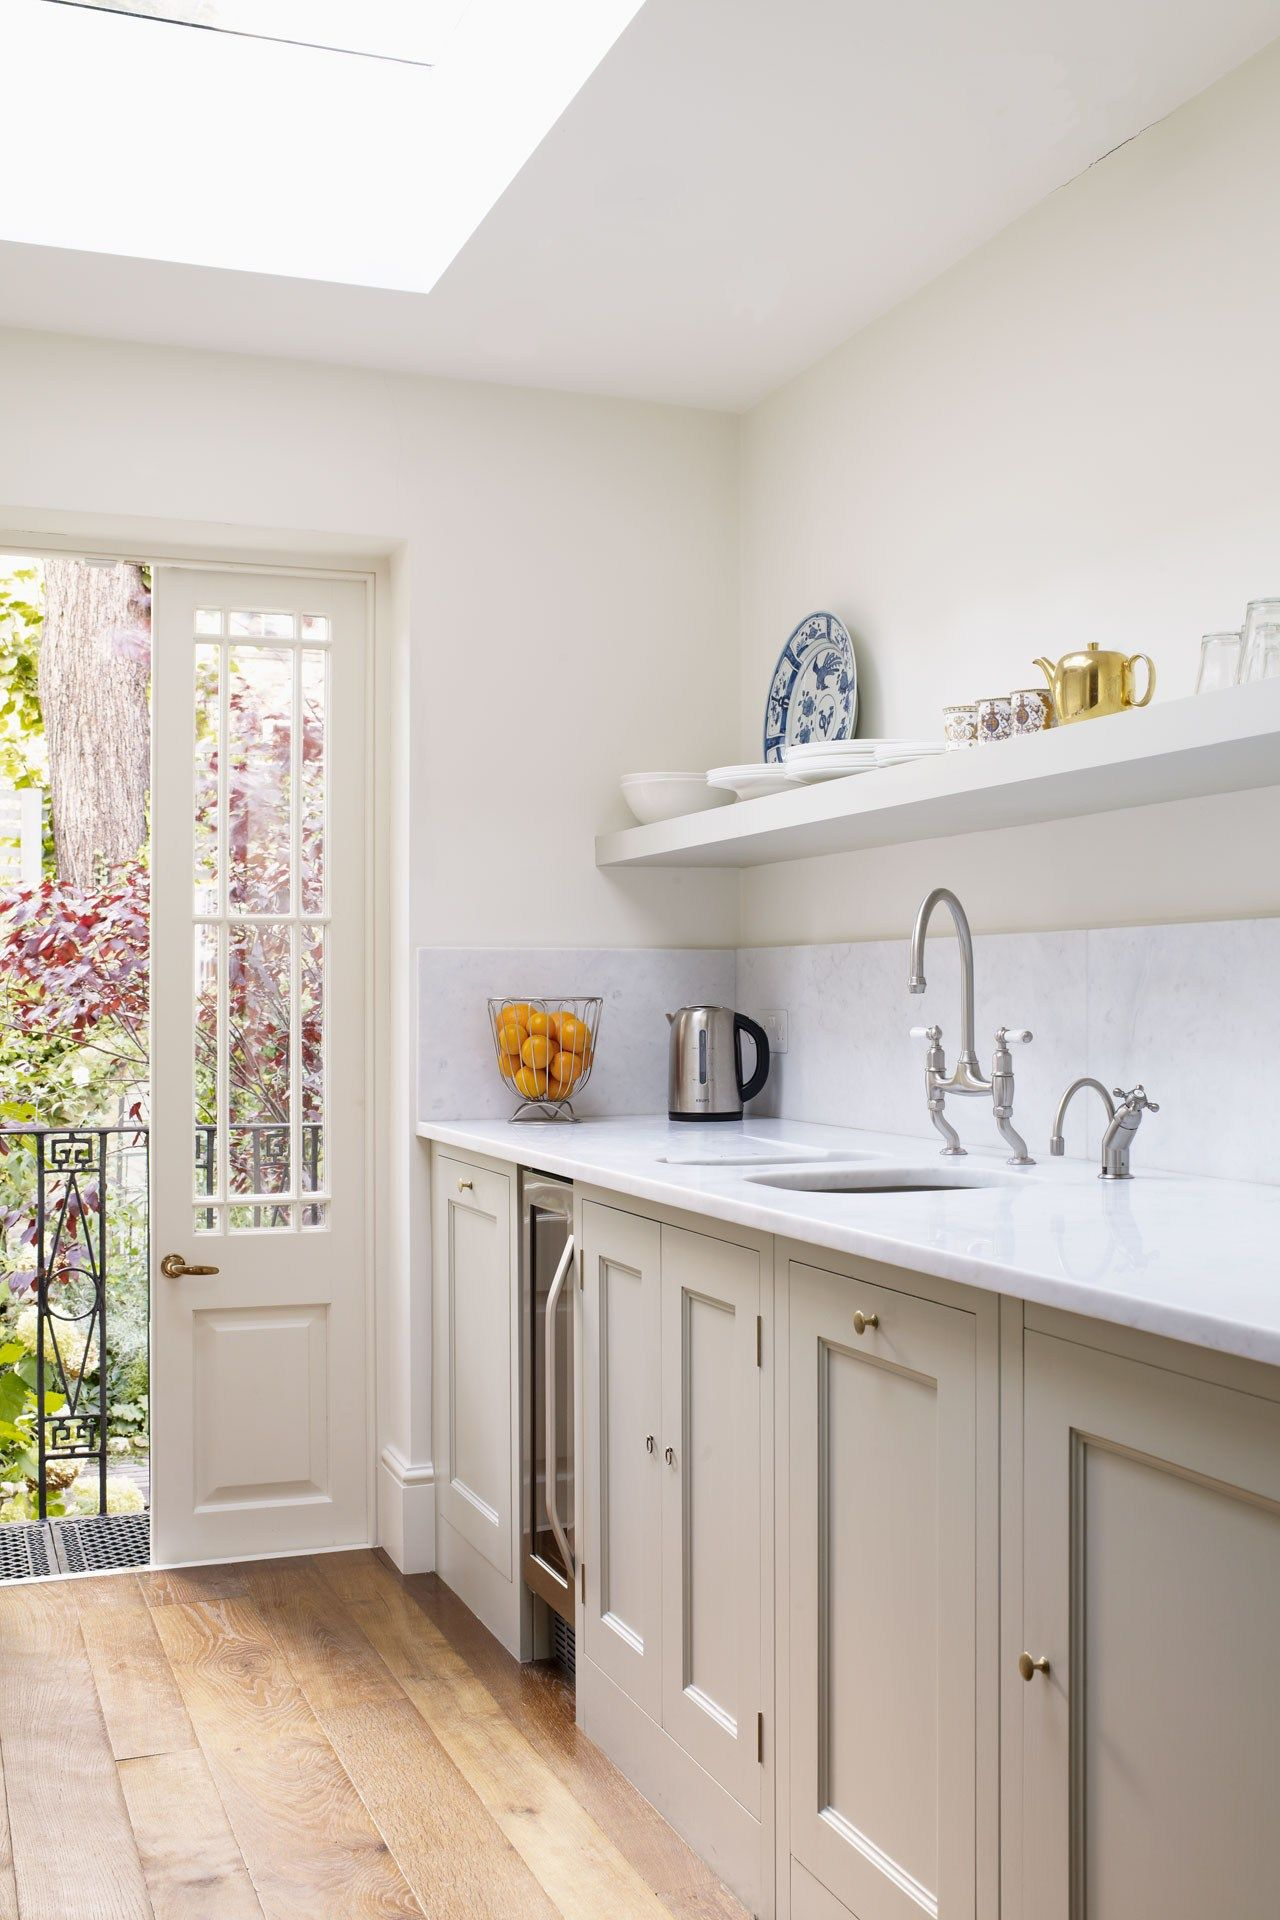 Kitchen ideas (With images) | Small house kitchen design ...